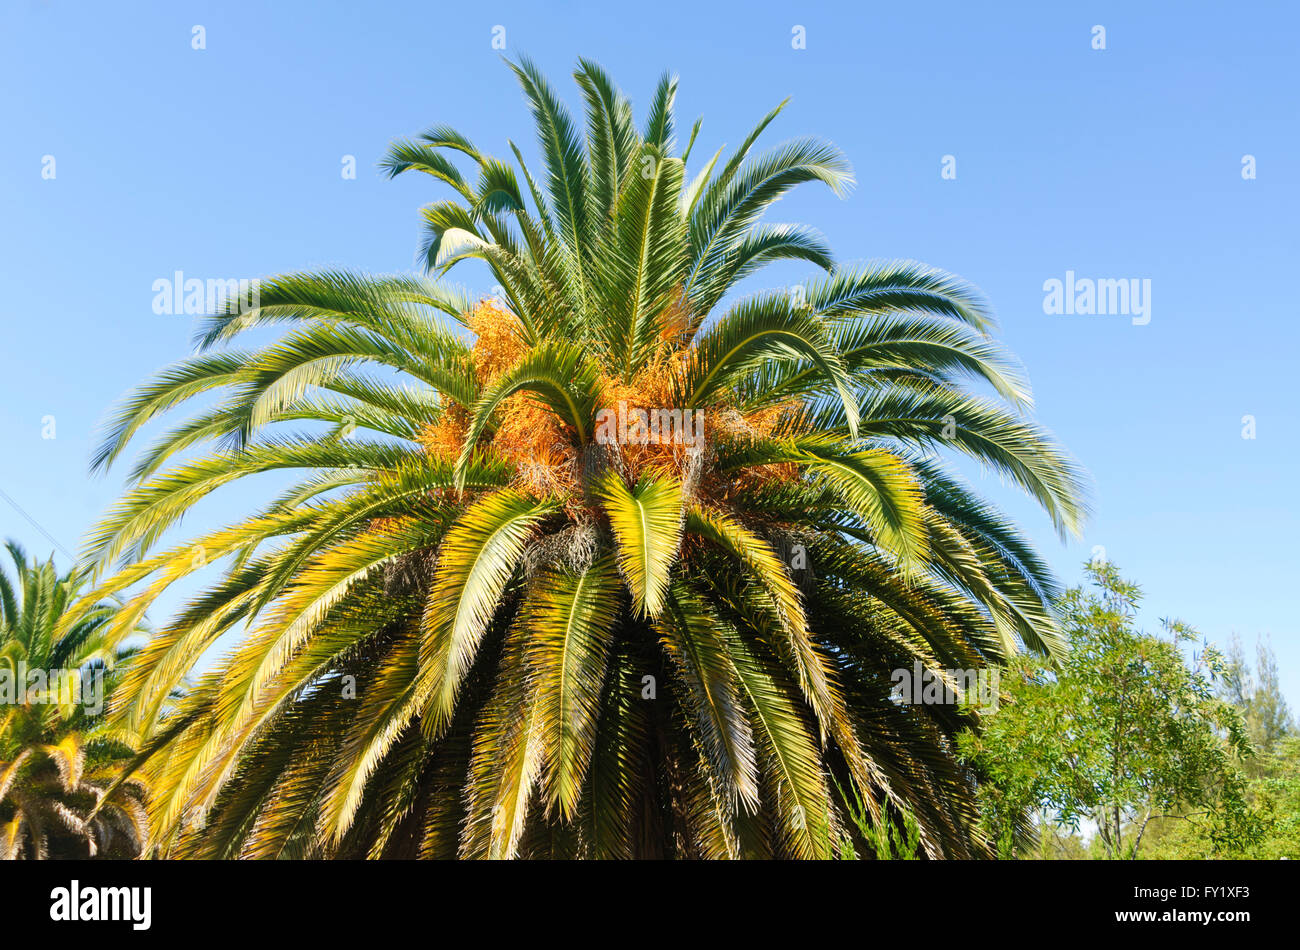 Canary date palm in Brisbane